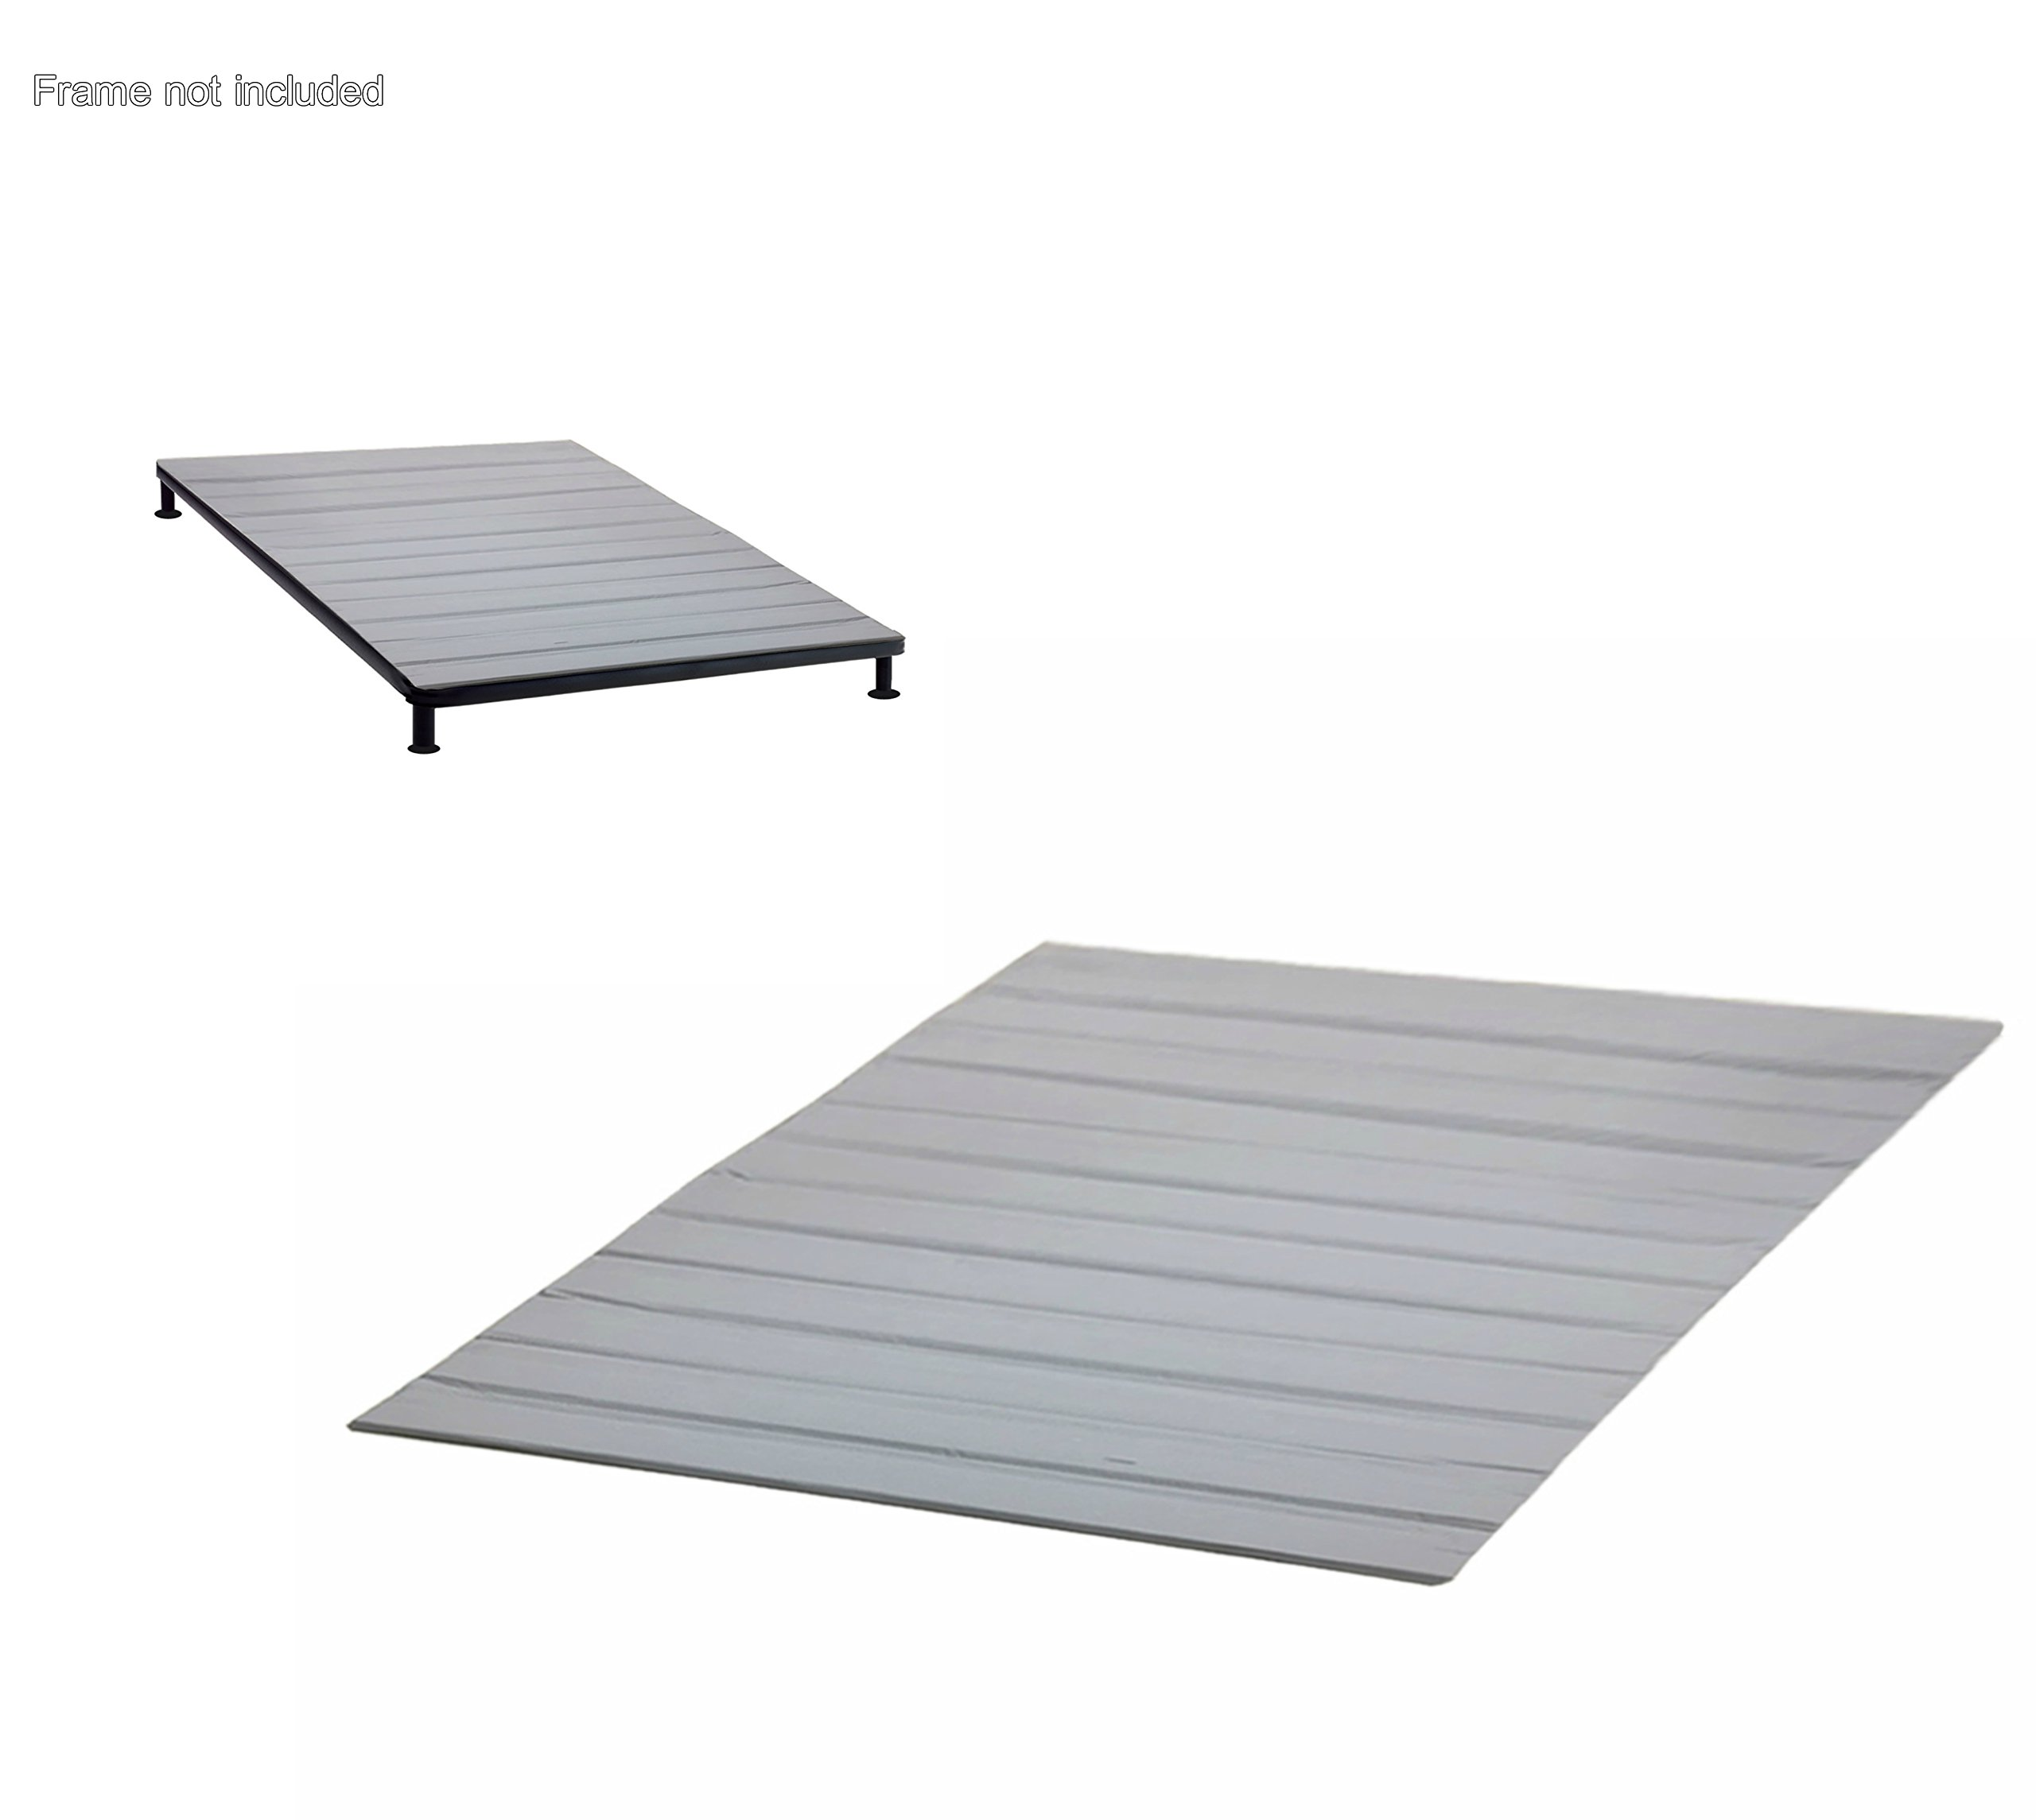 Continental Sleep, Standard Mattress Support Bunkie Board/Slats with Cover |Twin XL Size|